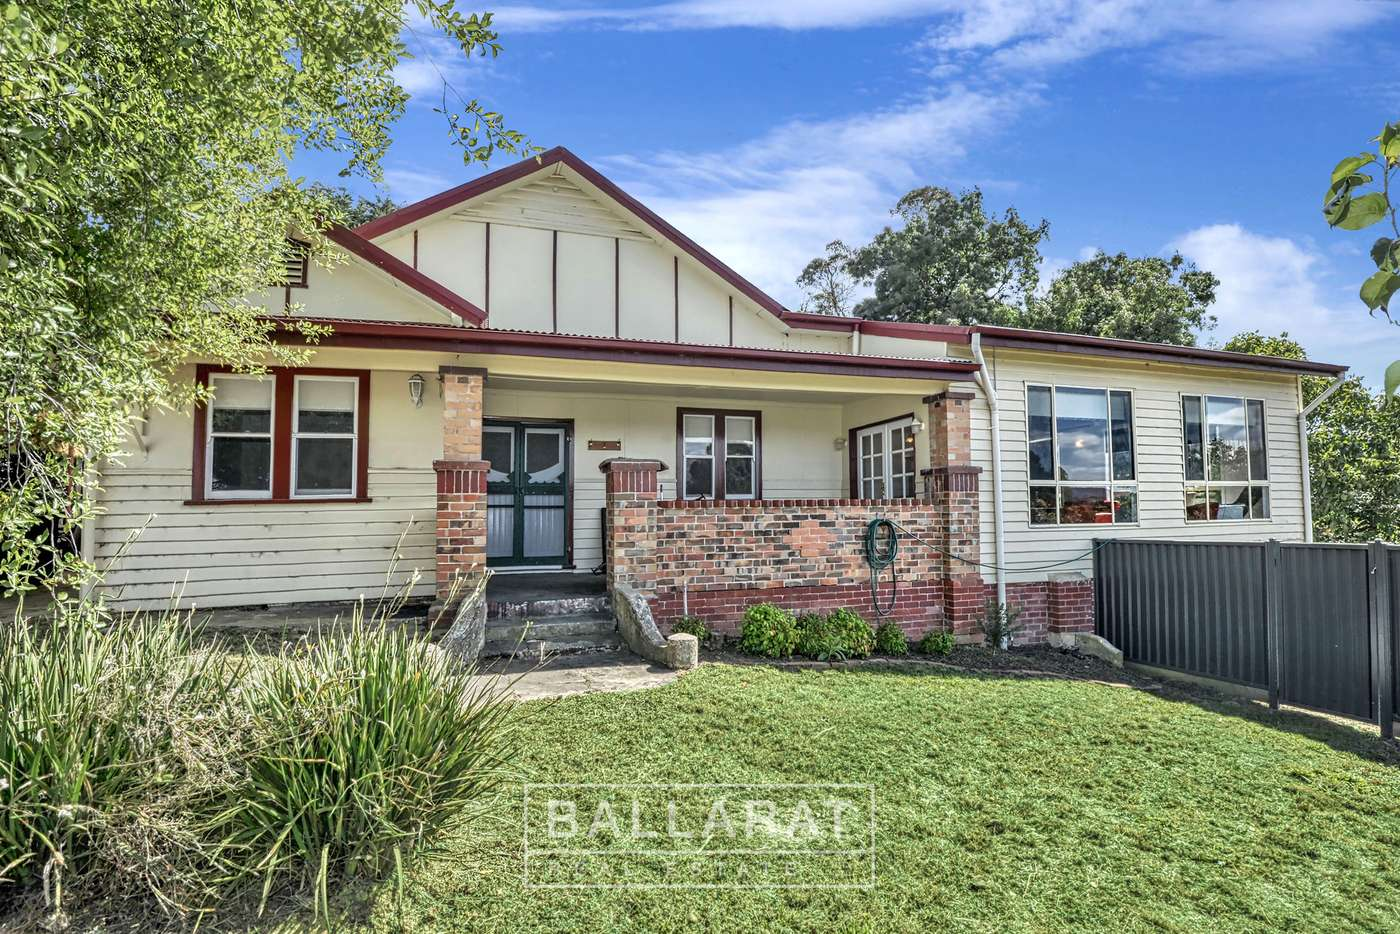 Main view of Homely house listing, 404 Haines Street, Nerrina VIC 3350